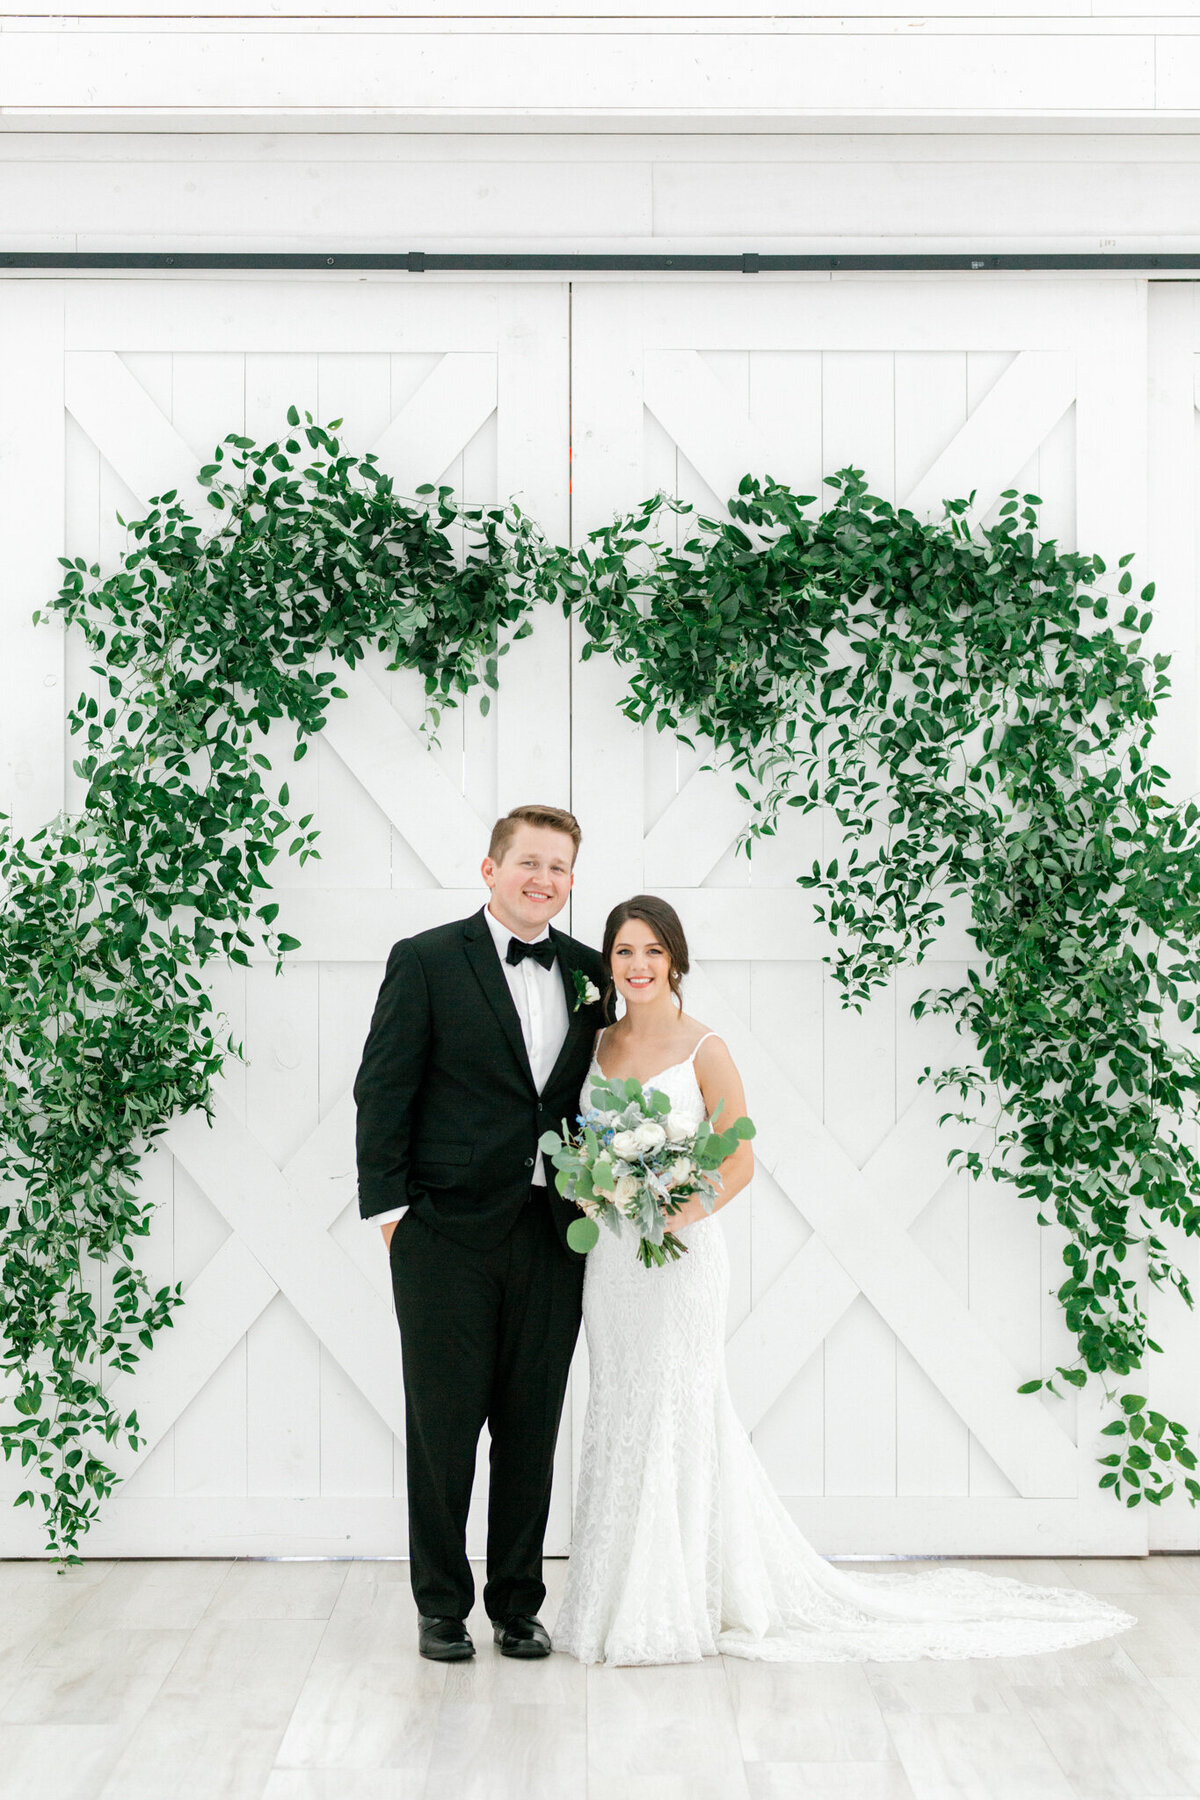 Anna & Billy's Wedding at The Nest at Ruth Farms | Dallas Wedding Photographer | Sami Kathryn Photography-115